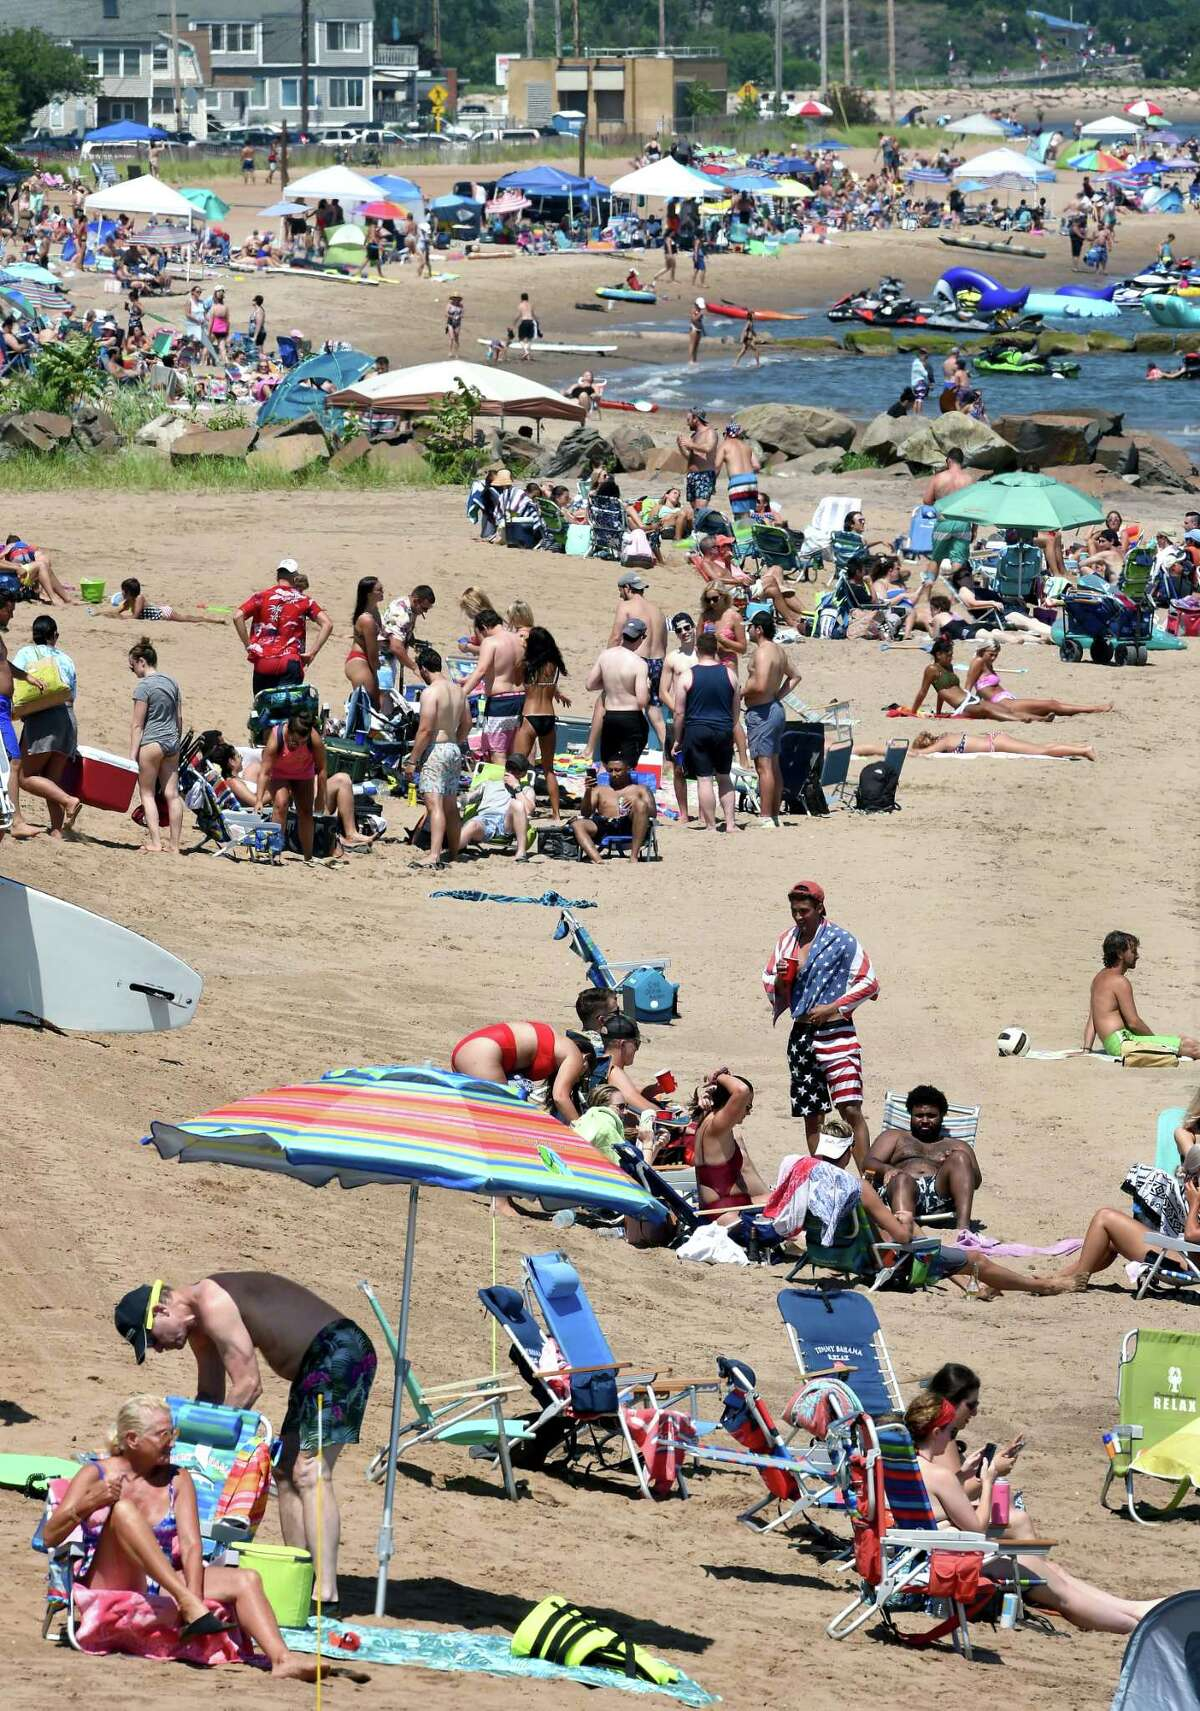 People escape the heat at the beach off of Ocean Avenue in West Haven on July 4, 2020.